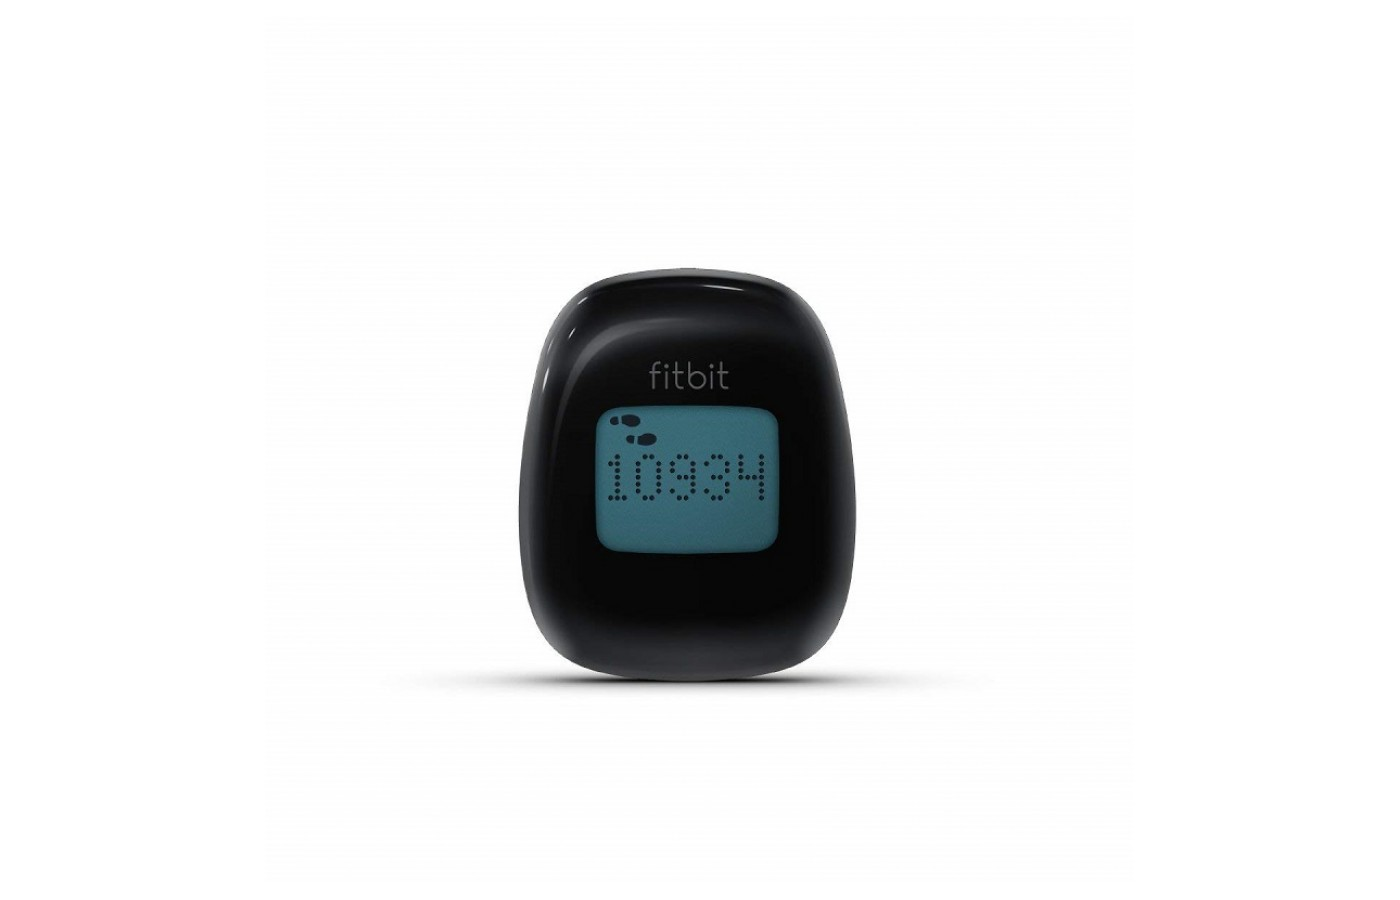 The Fitbit Zip offers wireless syncing for a more streamline experience.